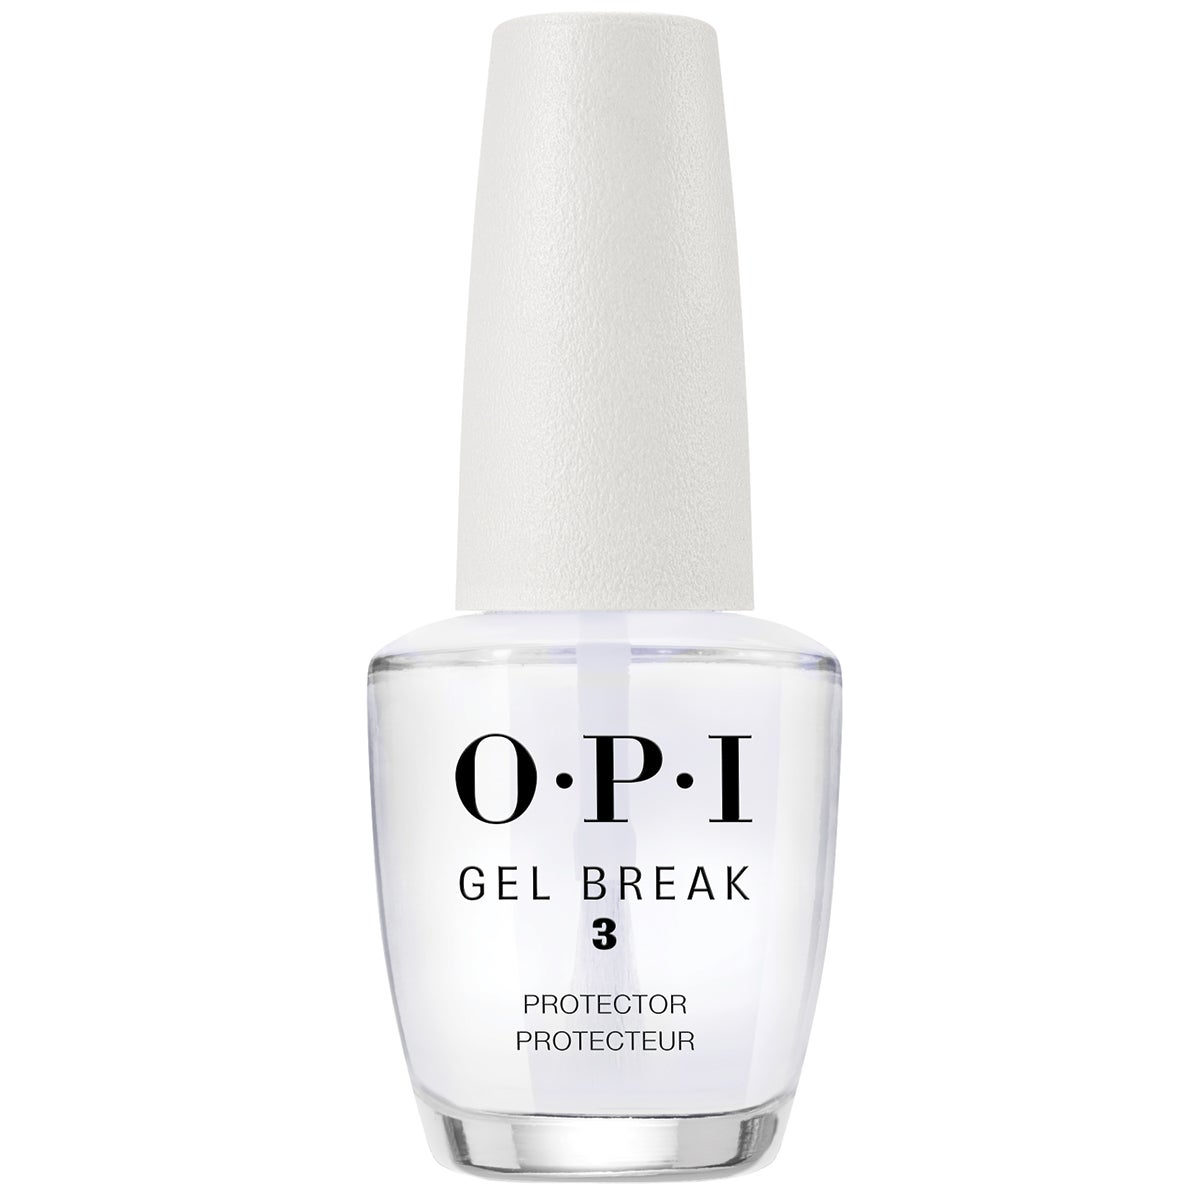 OPI Gel Break Protector